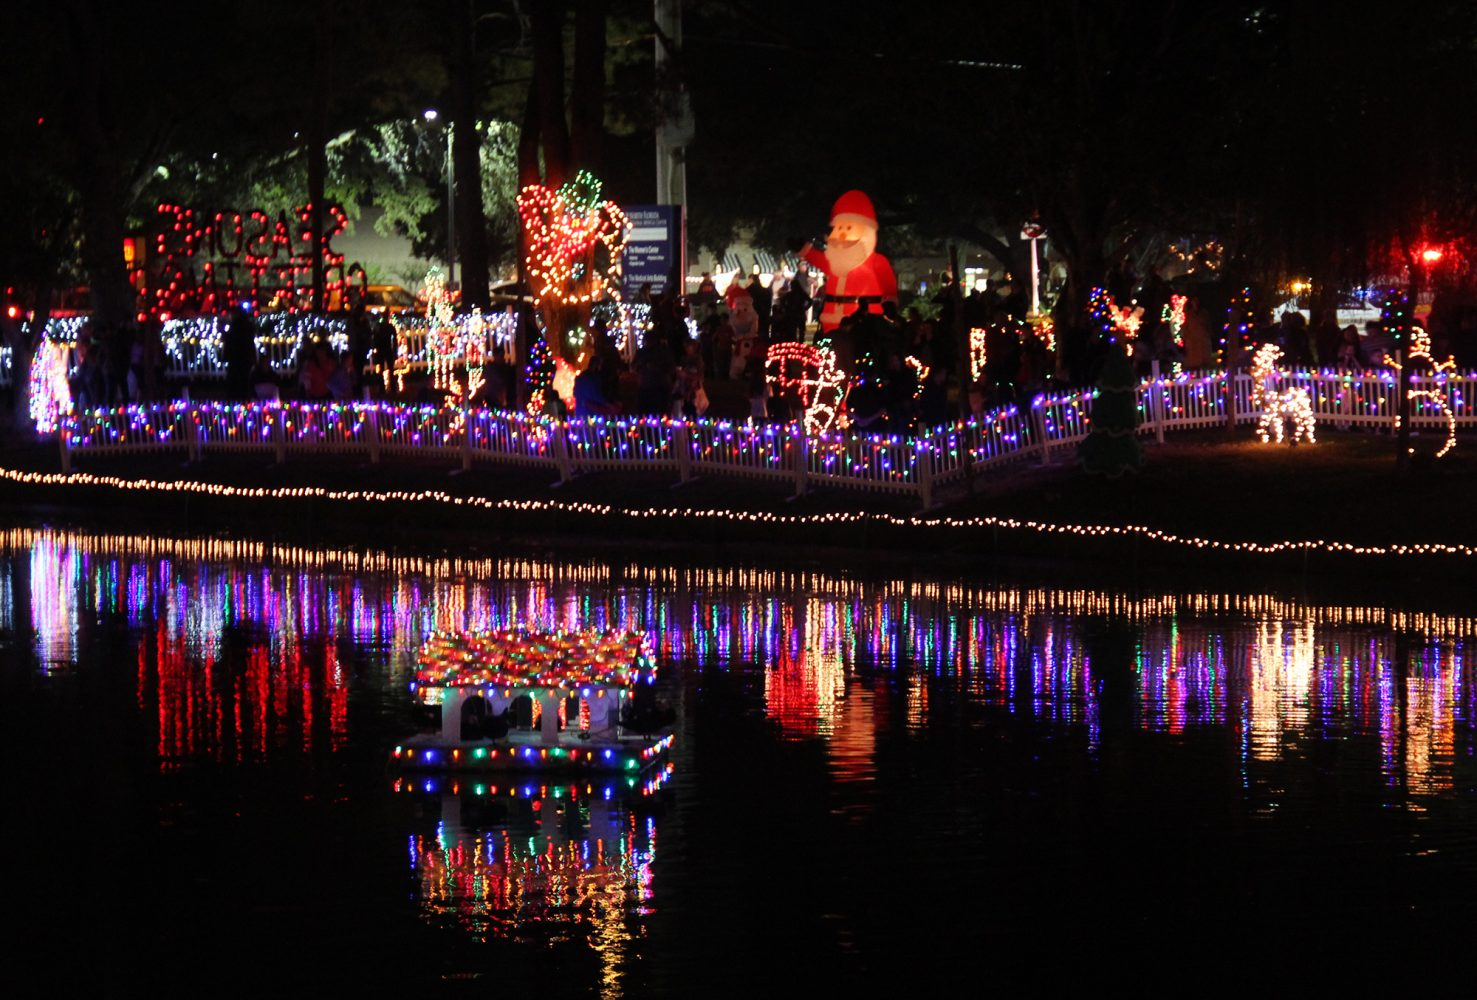 A display of 80,000 lights and dozens of famous figures light up Duck Pond for the 27th Annual Pond Lighting Festival hosted by the North Florida Regional Medical Center Friday night. (photo by Visshaael Patel)